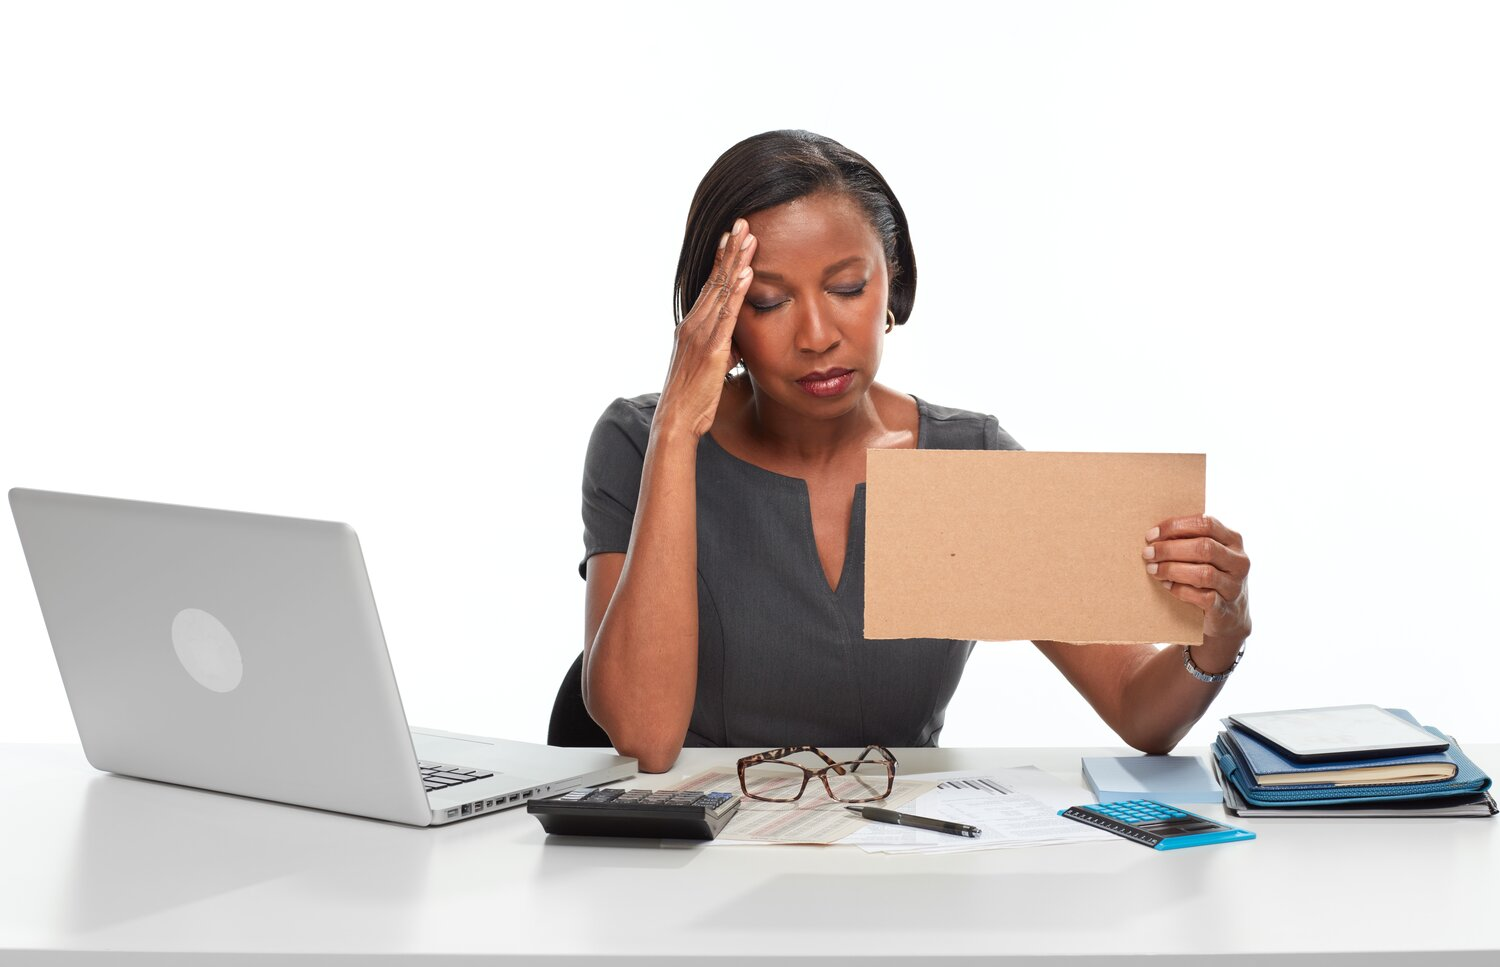 African American business woman looks tired and stressed with her hand to her forehead. She is surrounded by a laptop, glasses, calculator, and papers.